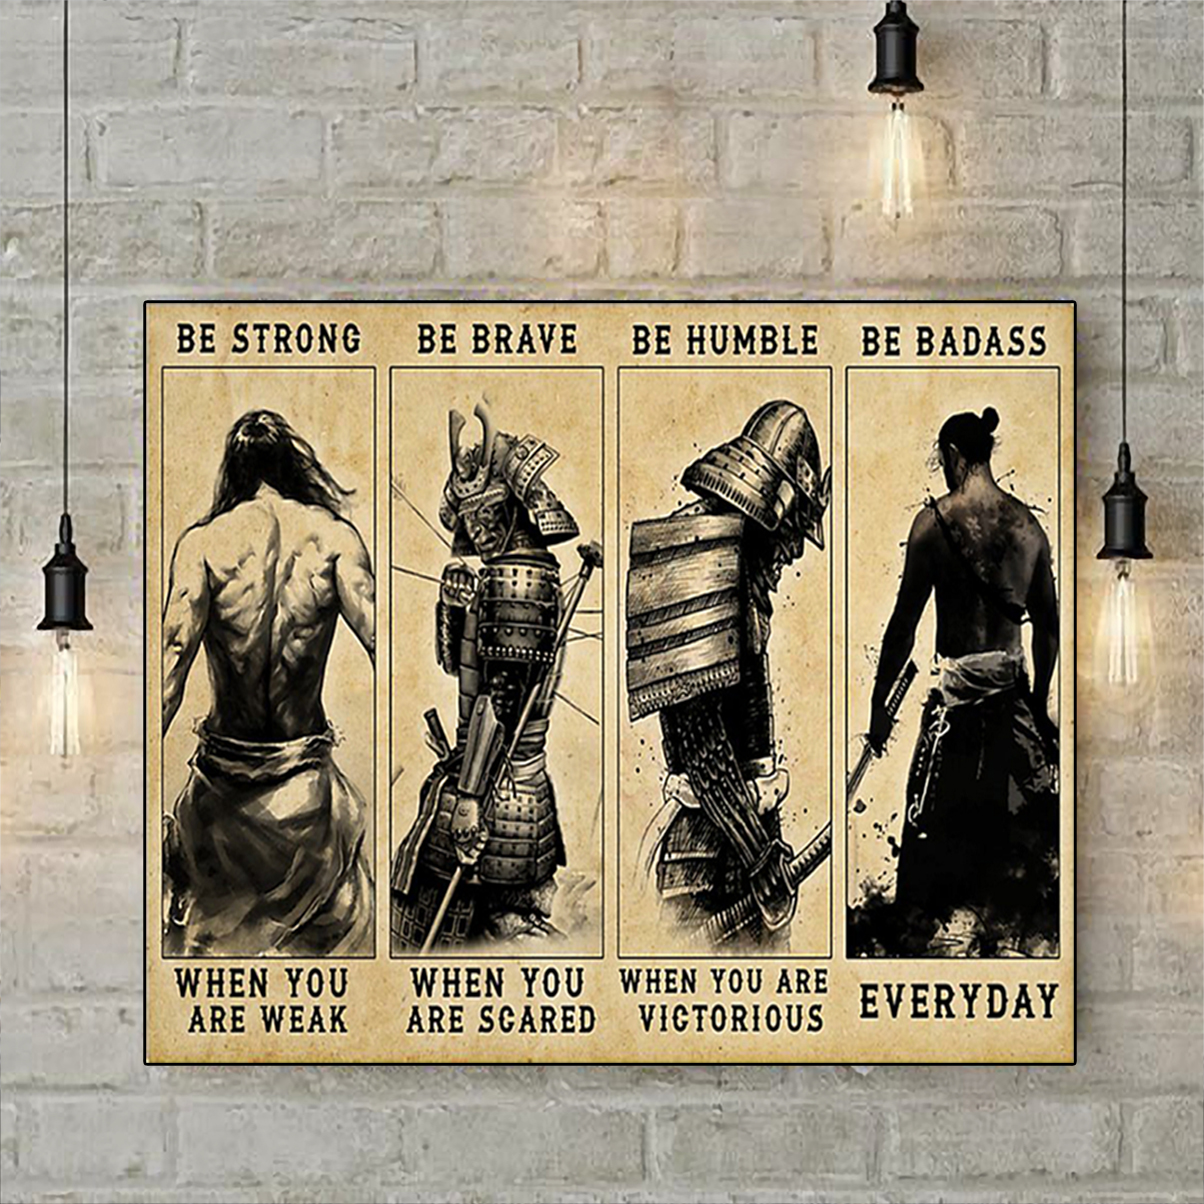 Samurai be strong be brave be humble be badass poster A3